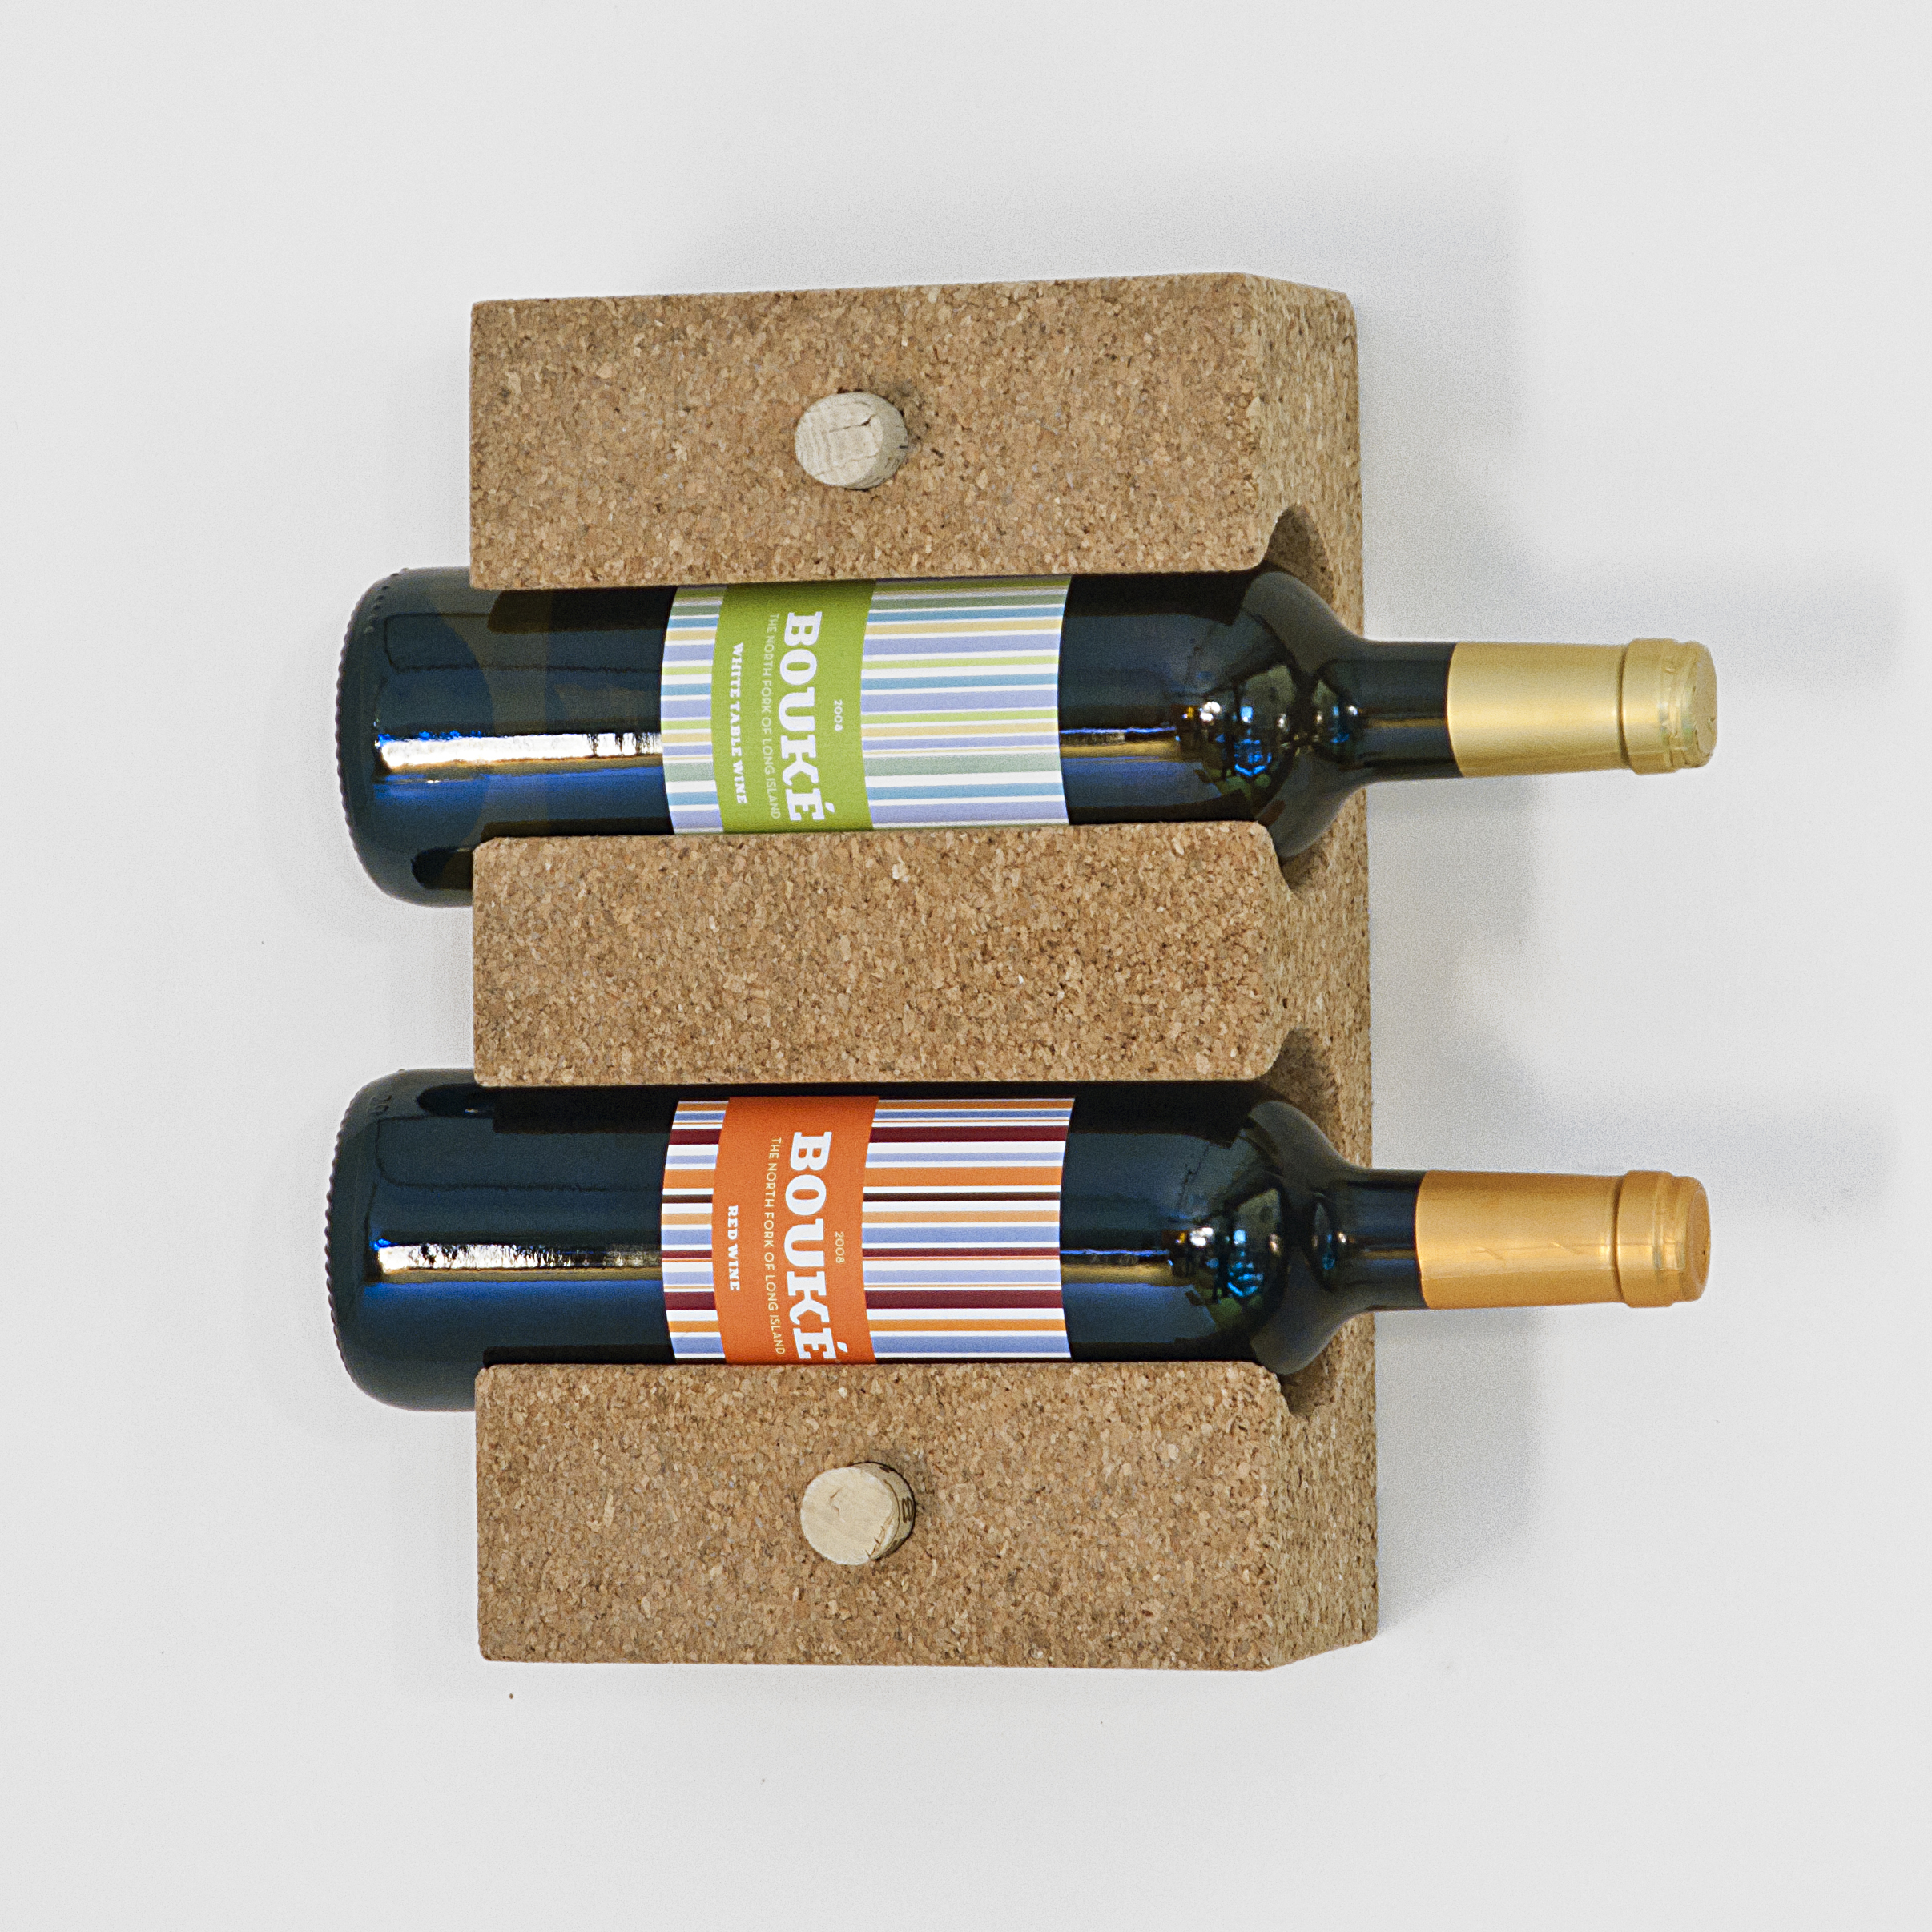 2-Bottle Wall-Mounted Cork Wine Rack